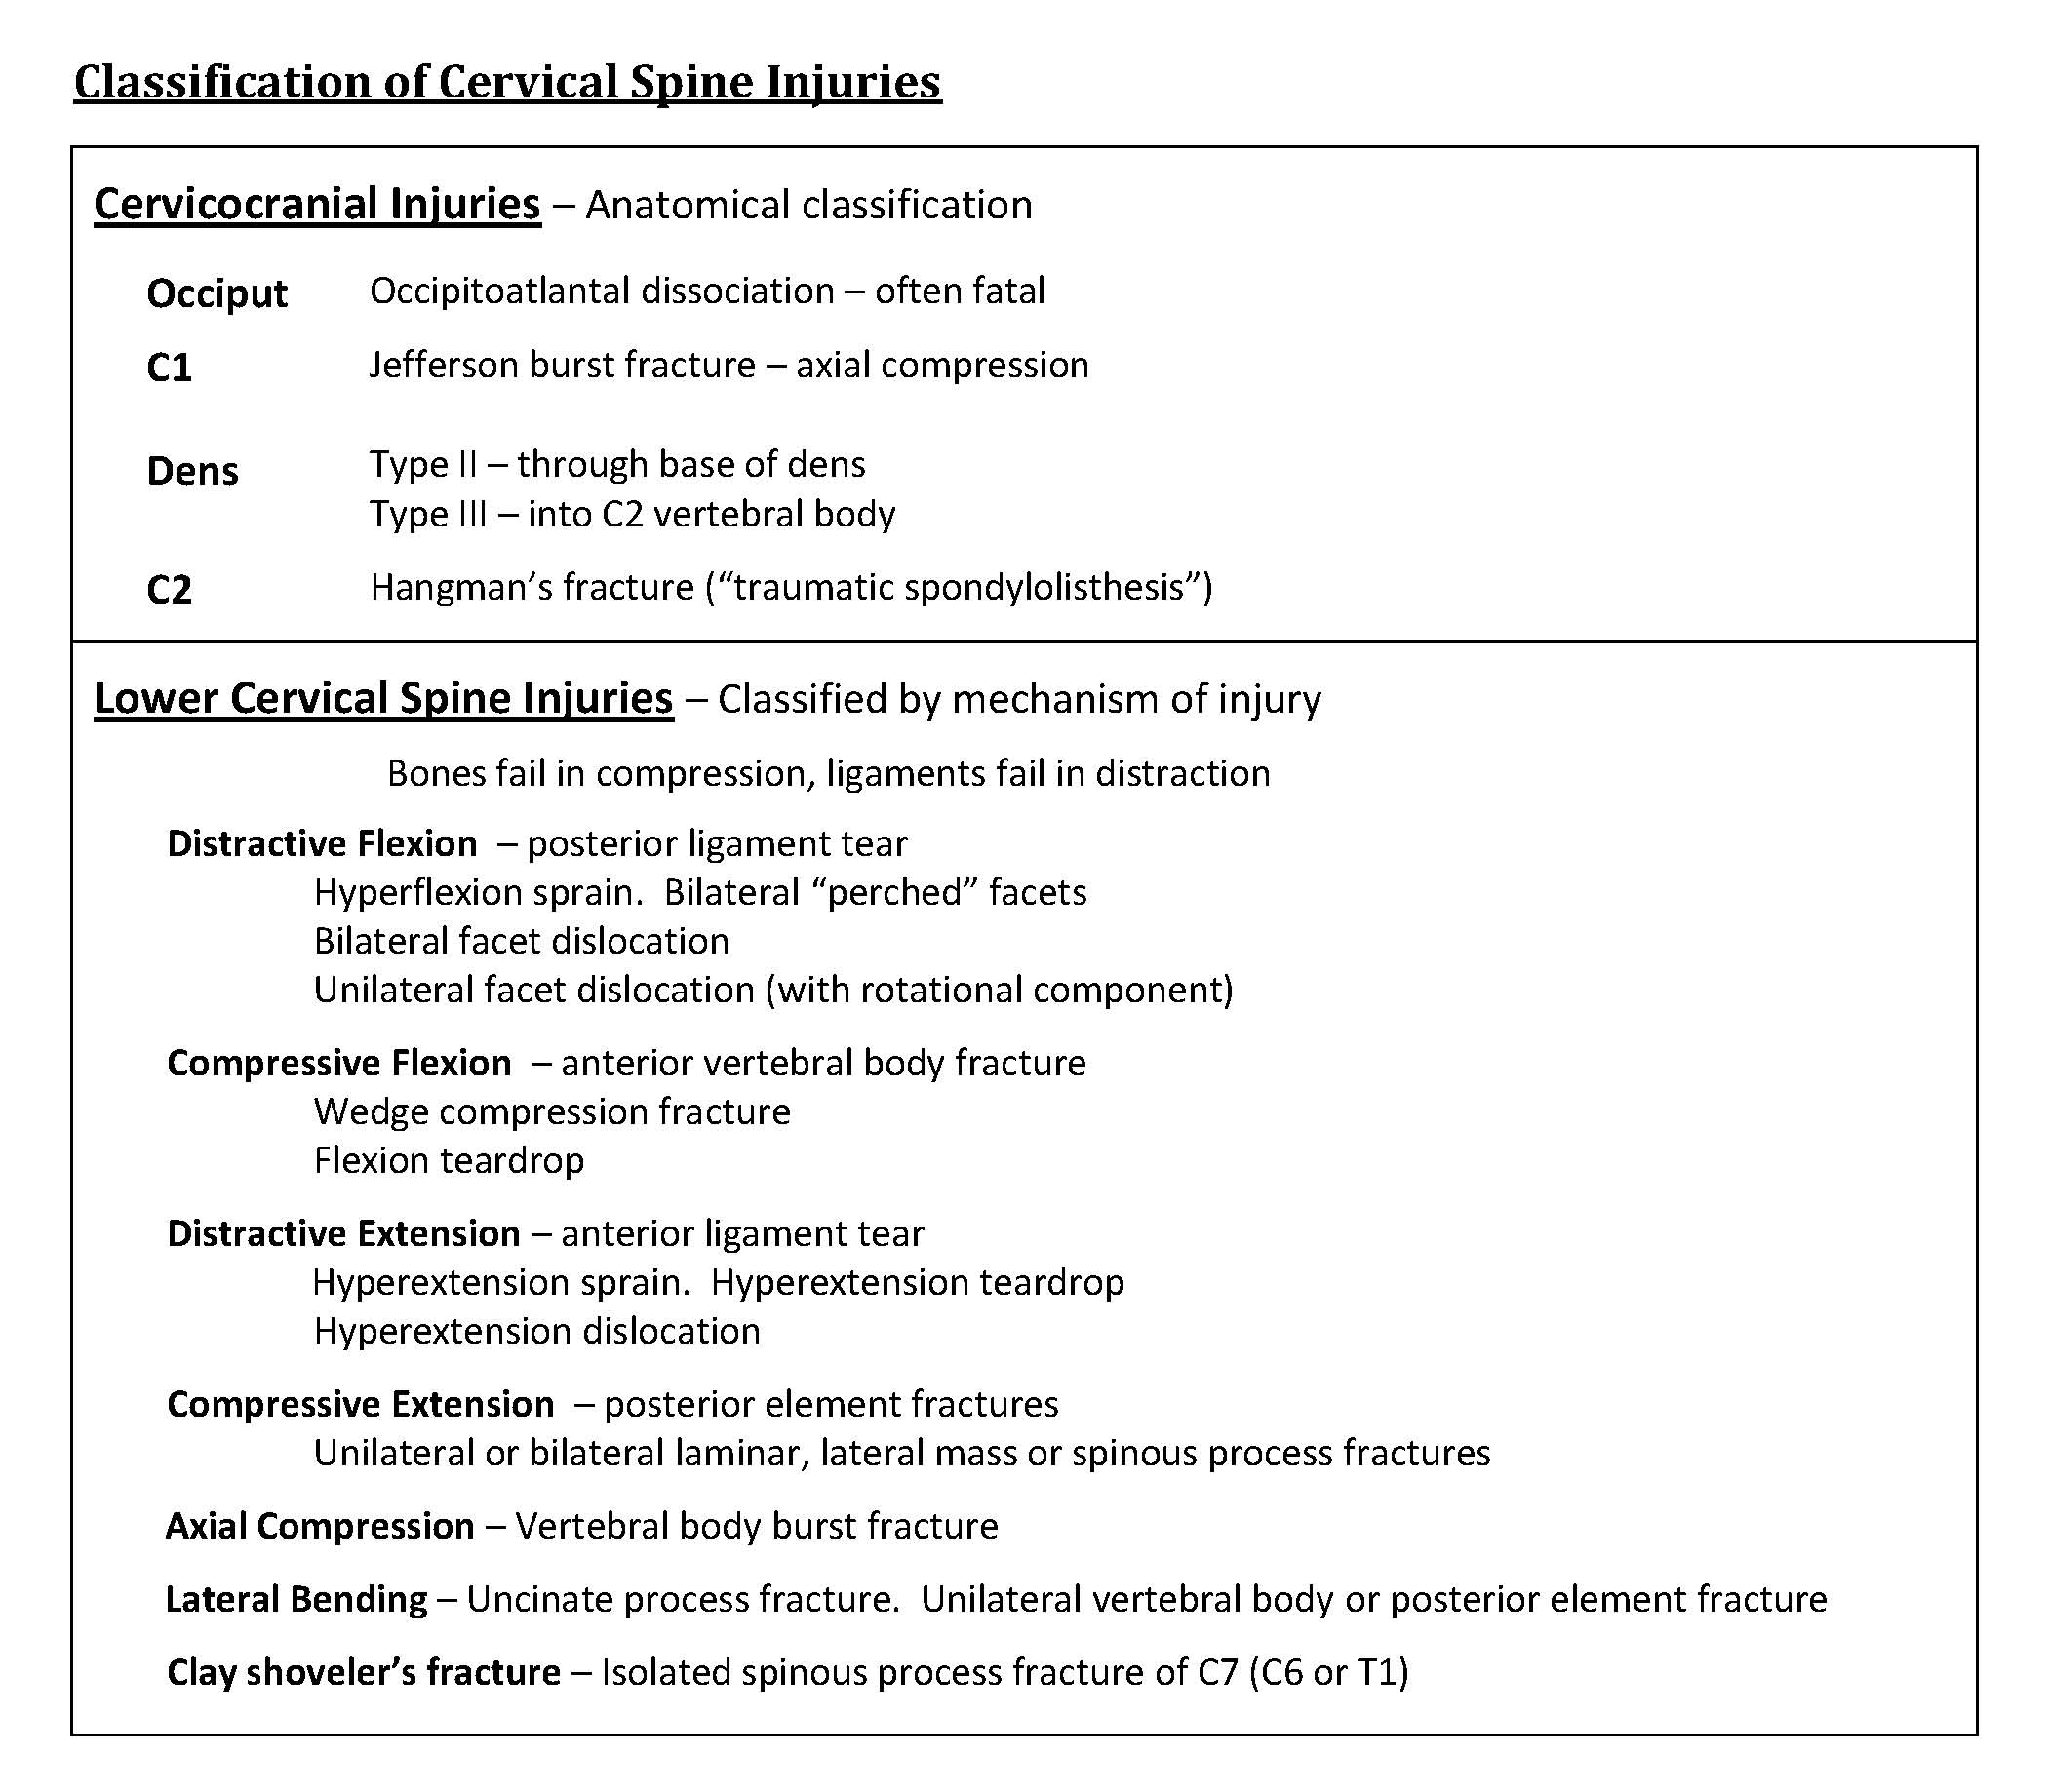 C-Spine Injuries Table